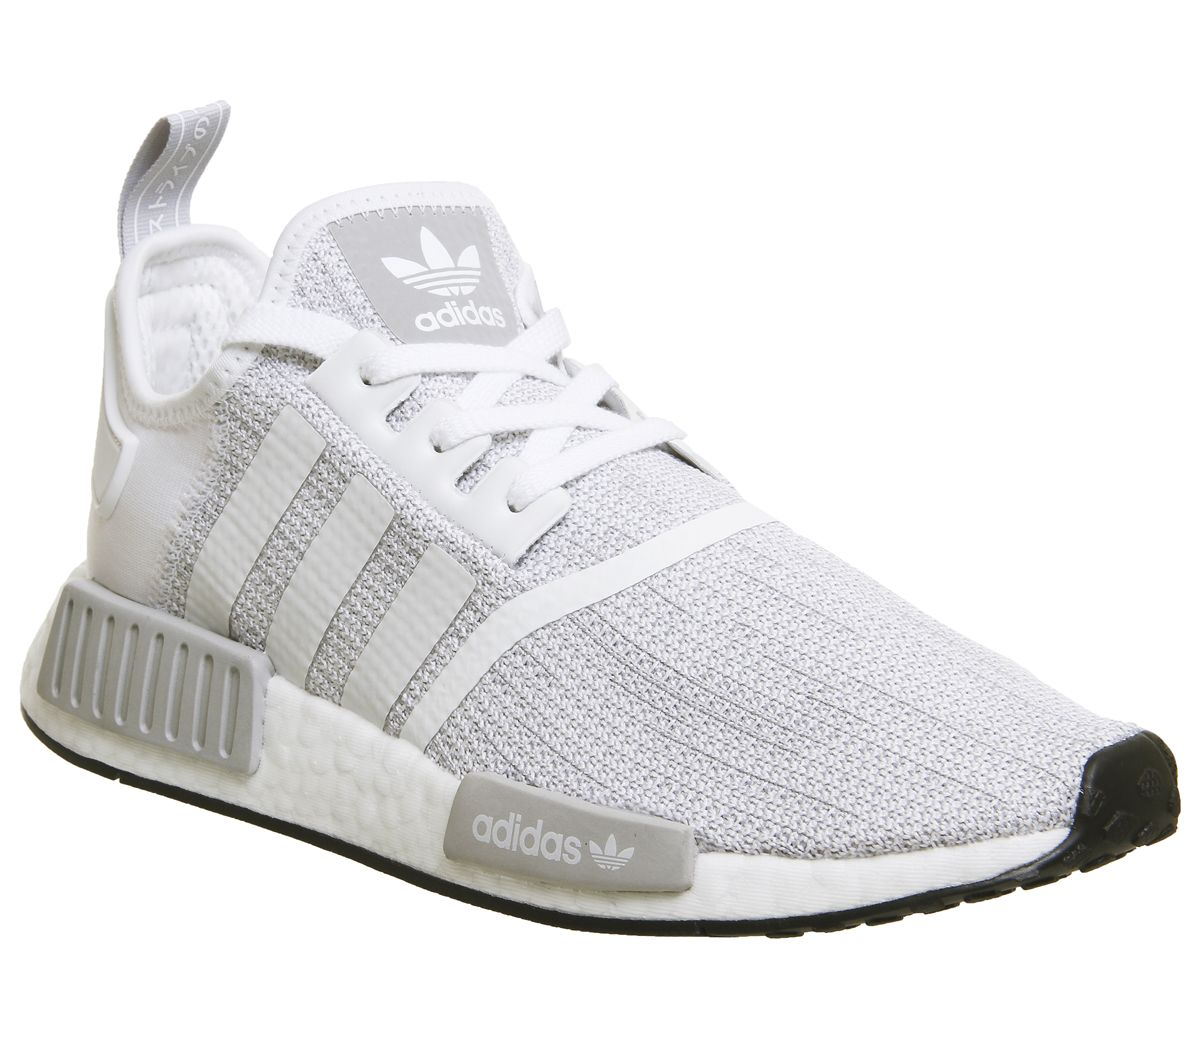 55039fd3e795 Adidas Nmd R1 Trainers White Grey Core Black - His trainers